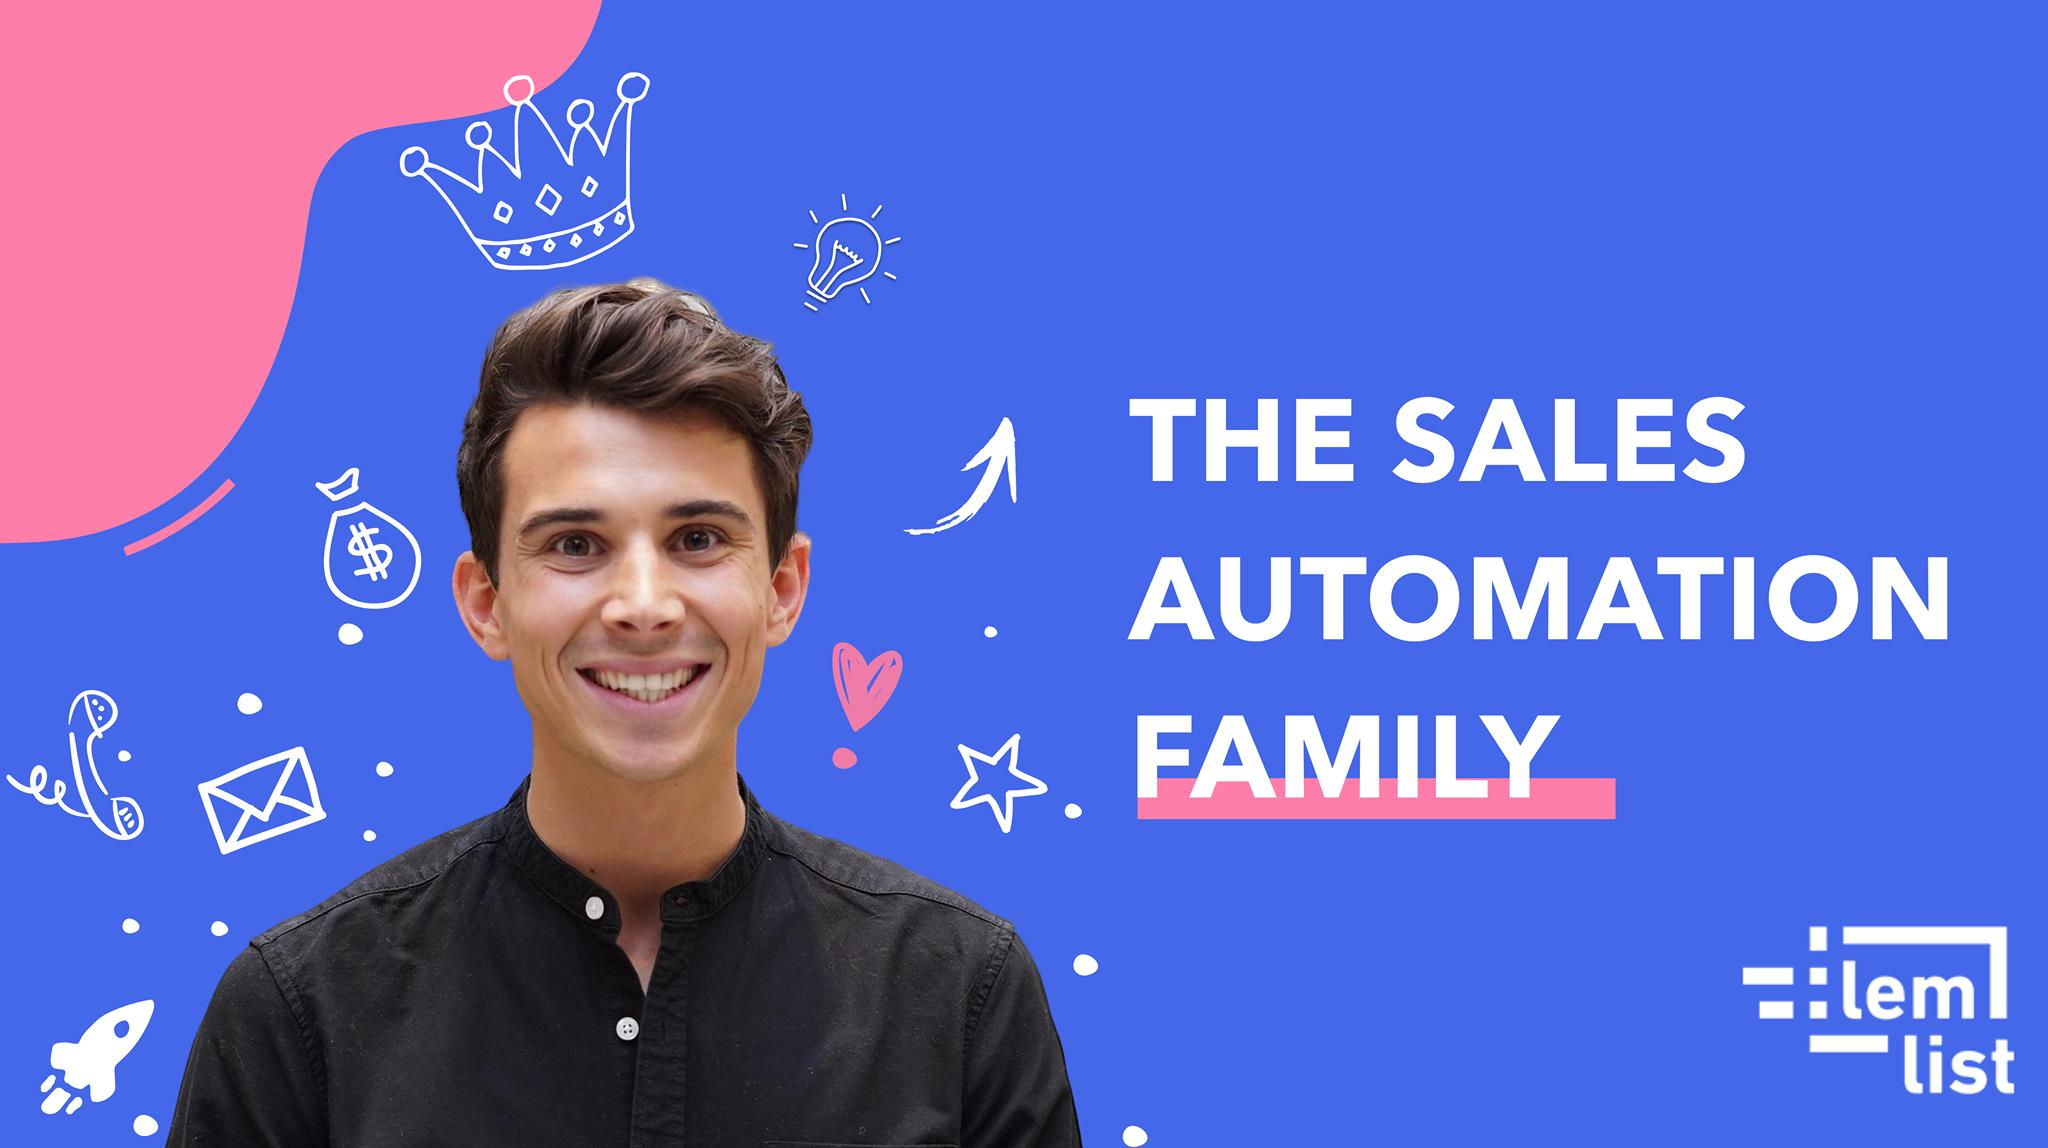 The Sales Automation Family